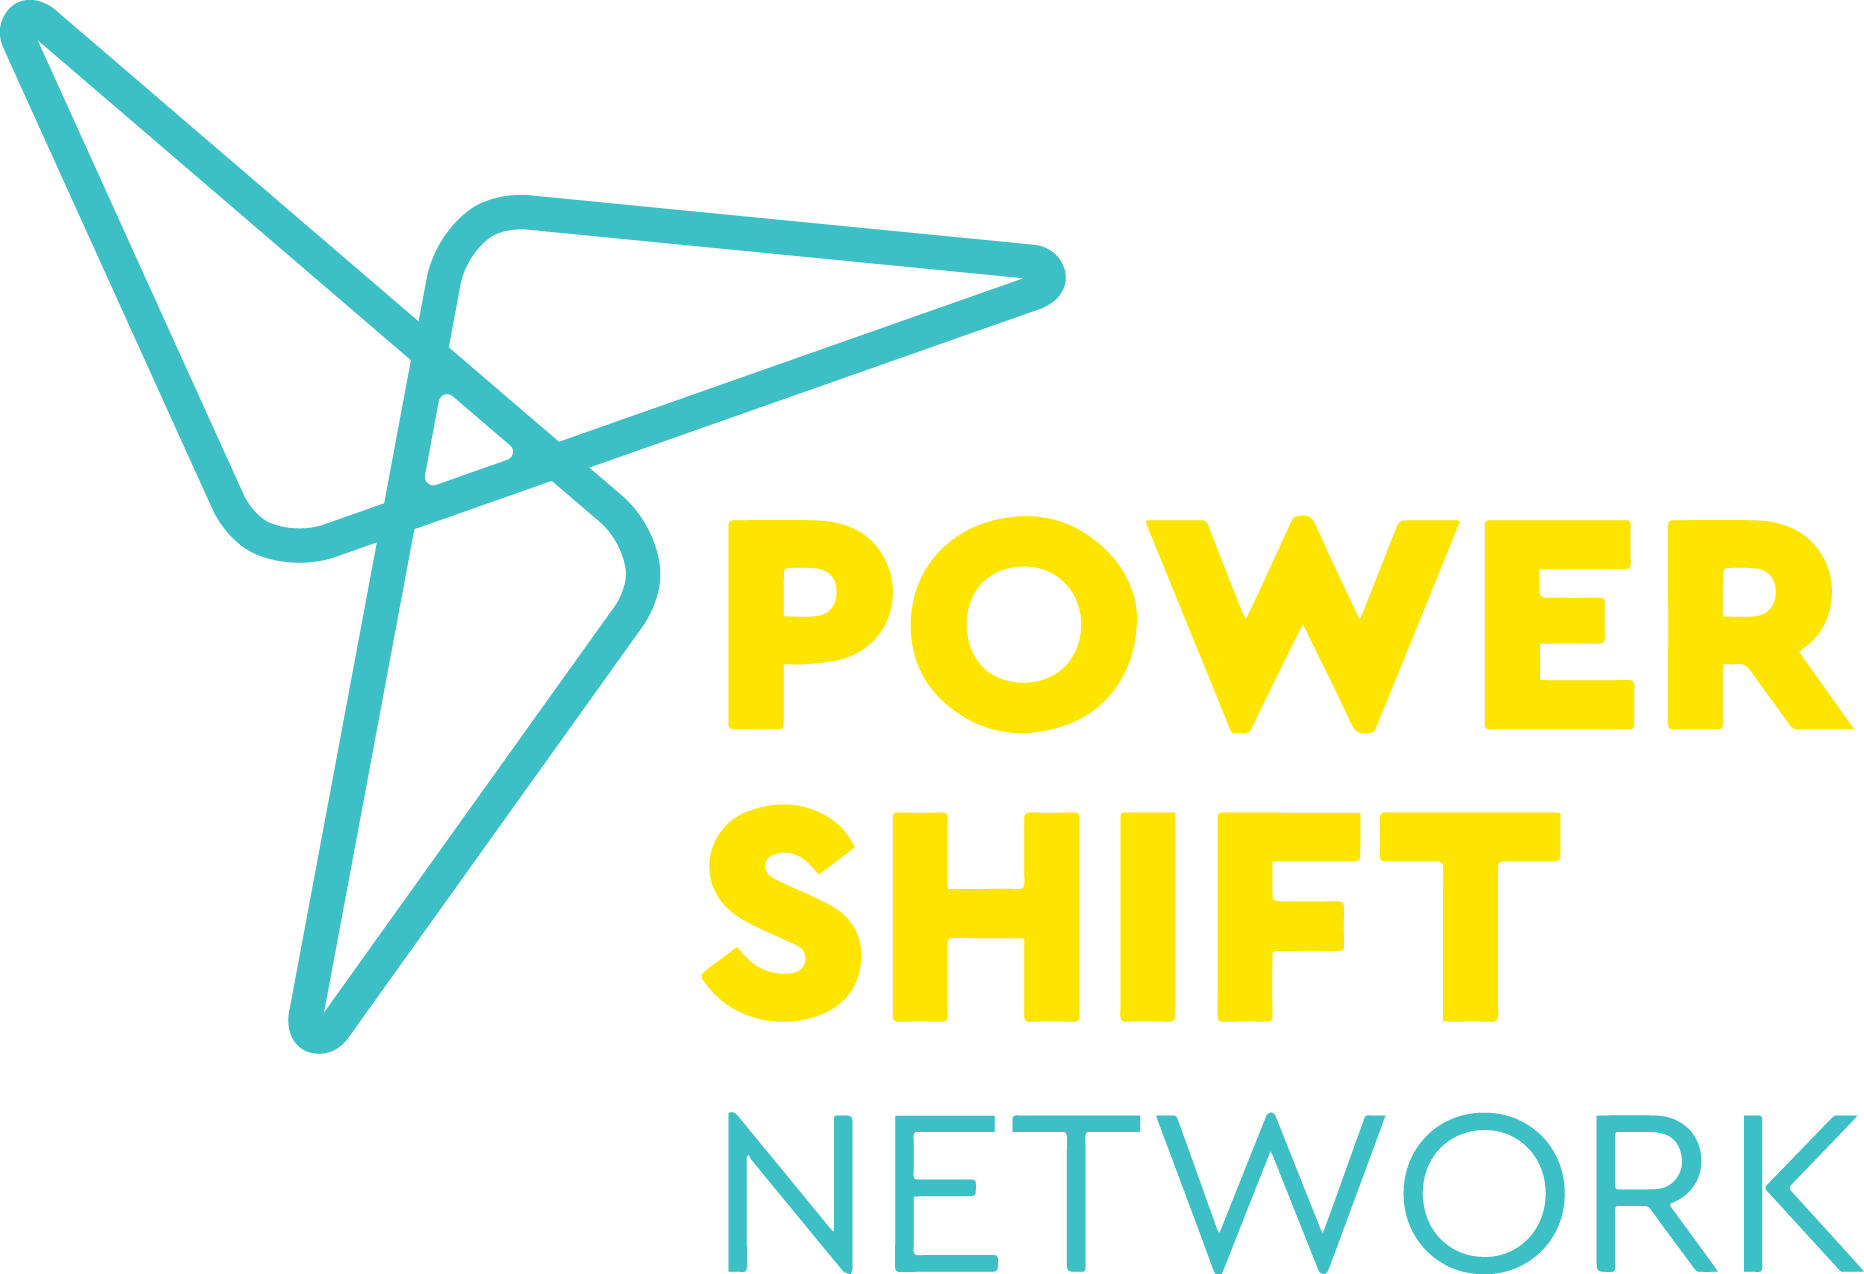 OCV is a member of the   Power Shift Network   (PSN) mobilizes the collective power of young people to mitigate climate change and create a just, clean energy future and resilient, thriving communities for all. We are embarking on two three-part storytelling collaborations with other PSN members:  Our Children's Trust  and  ZeroHour .